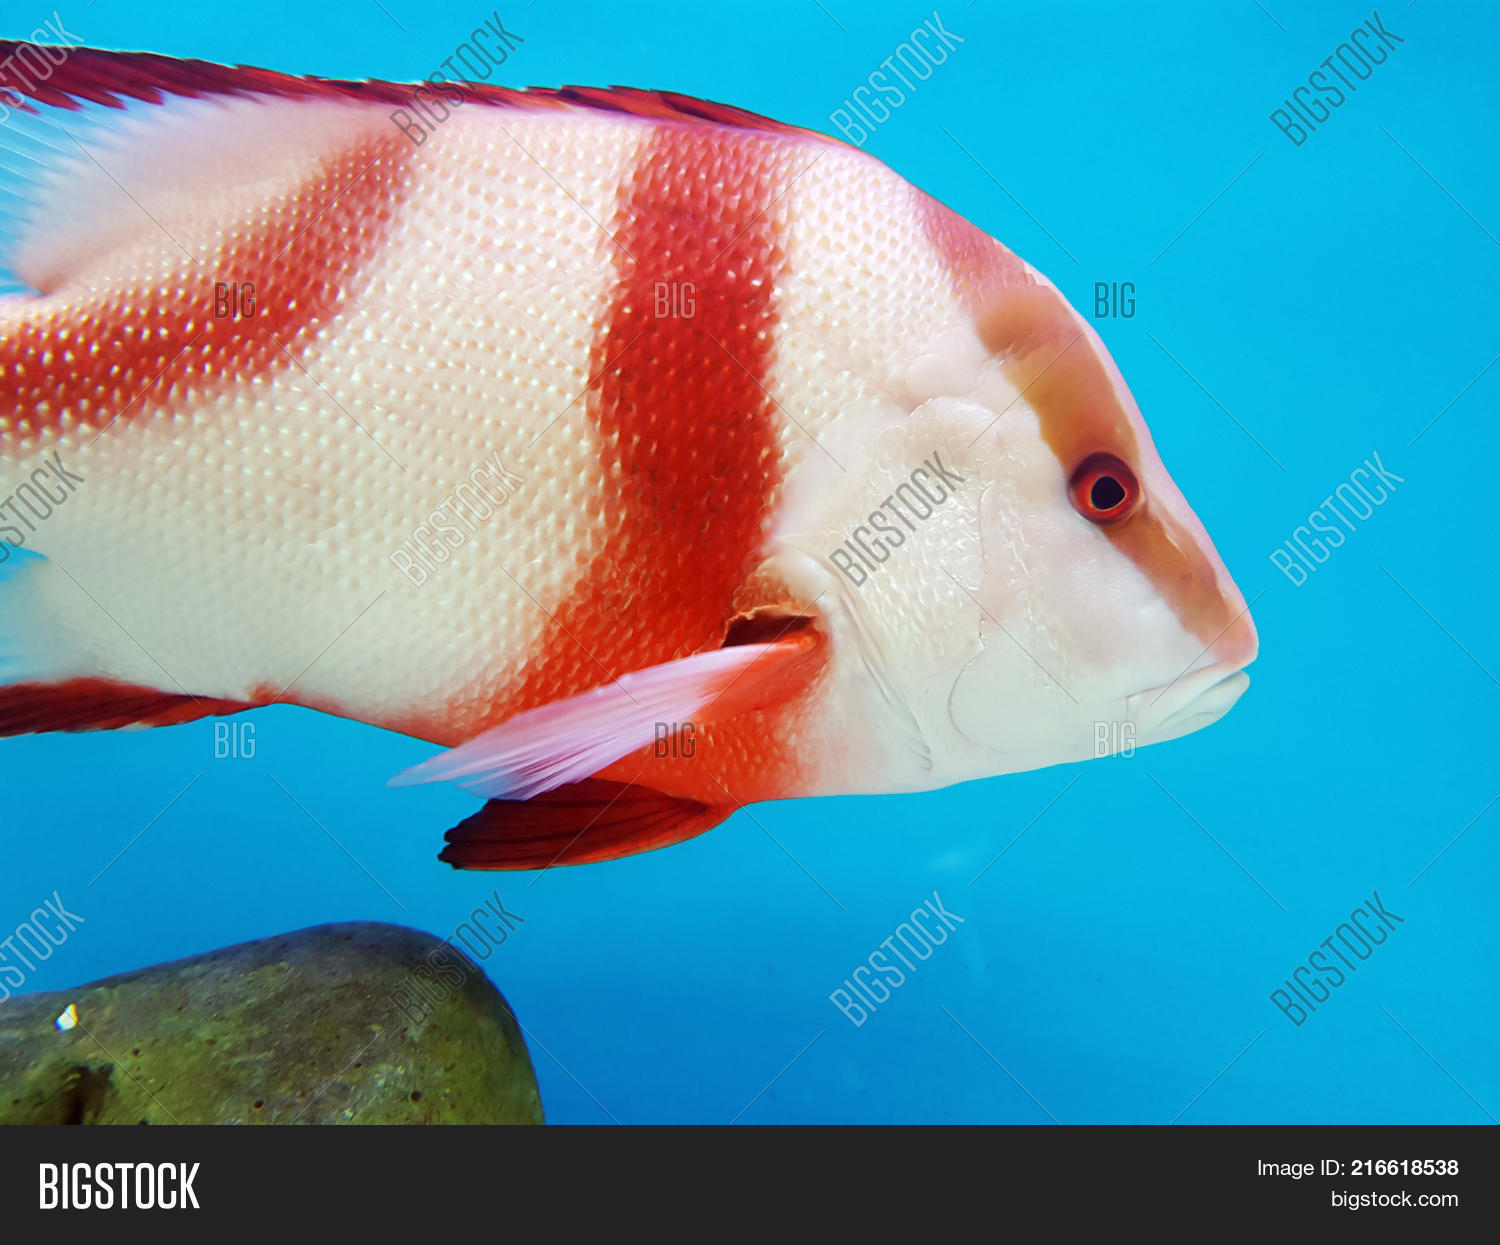 Colorful Fish Aquarium Image & Photo (Free Trial) | Bigstock